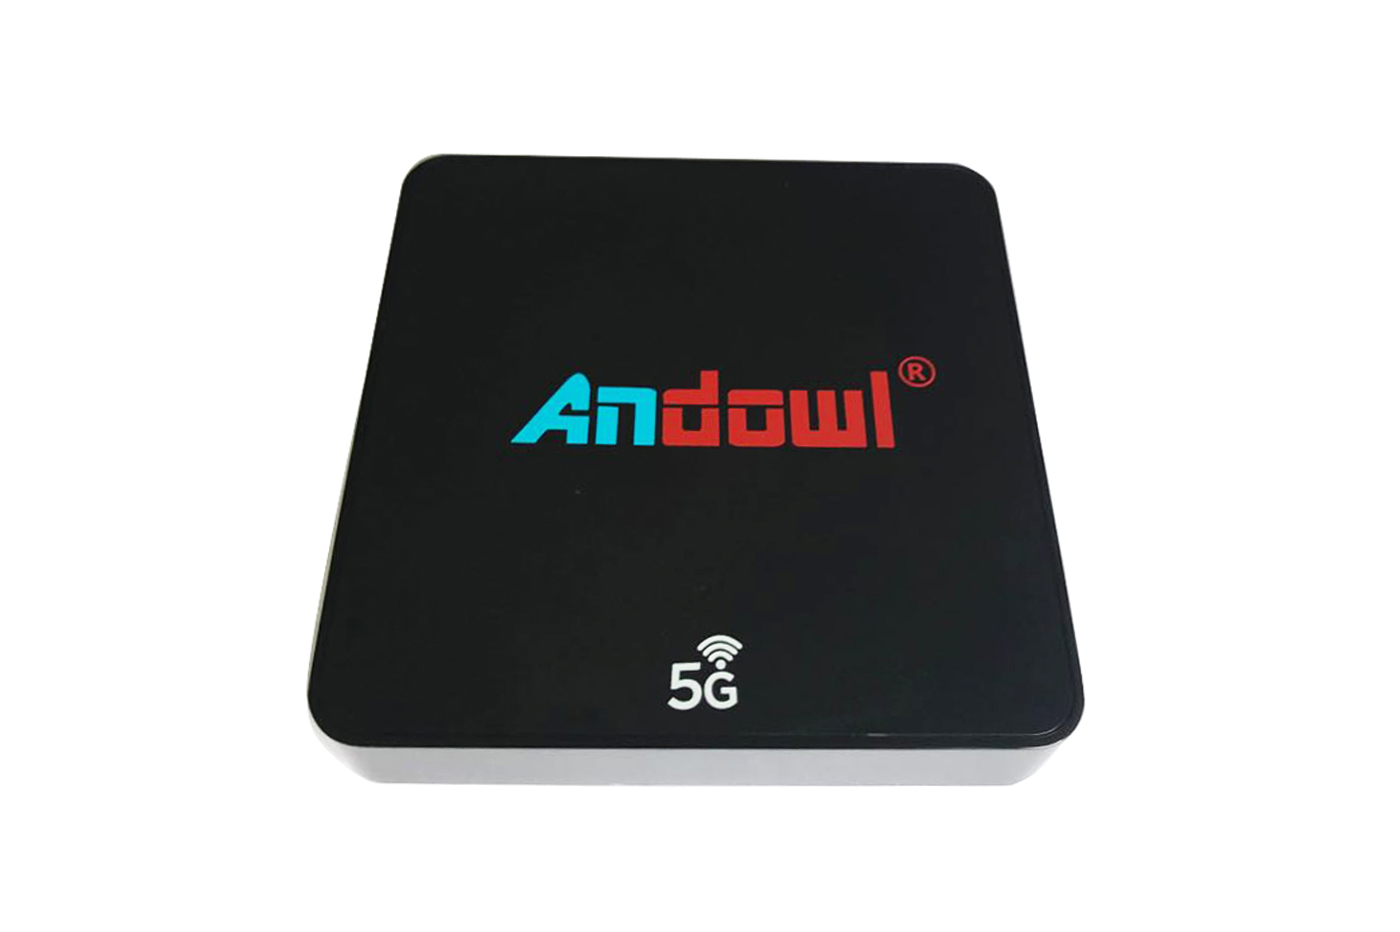 Android tv box internet smart tv wi-fi hdmi lan 4k telecomando 16gb 5G Q-M6